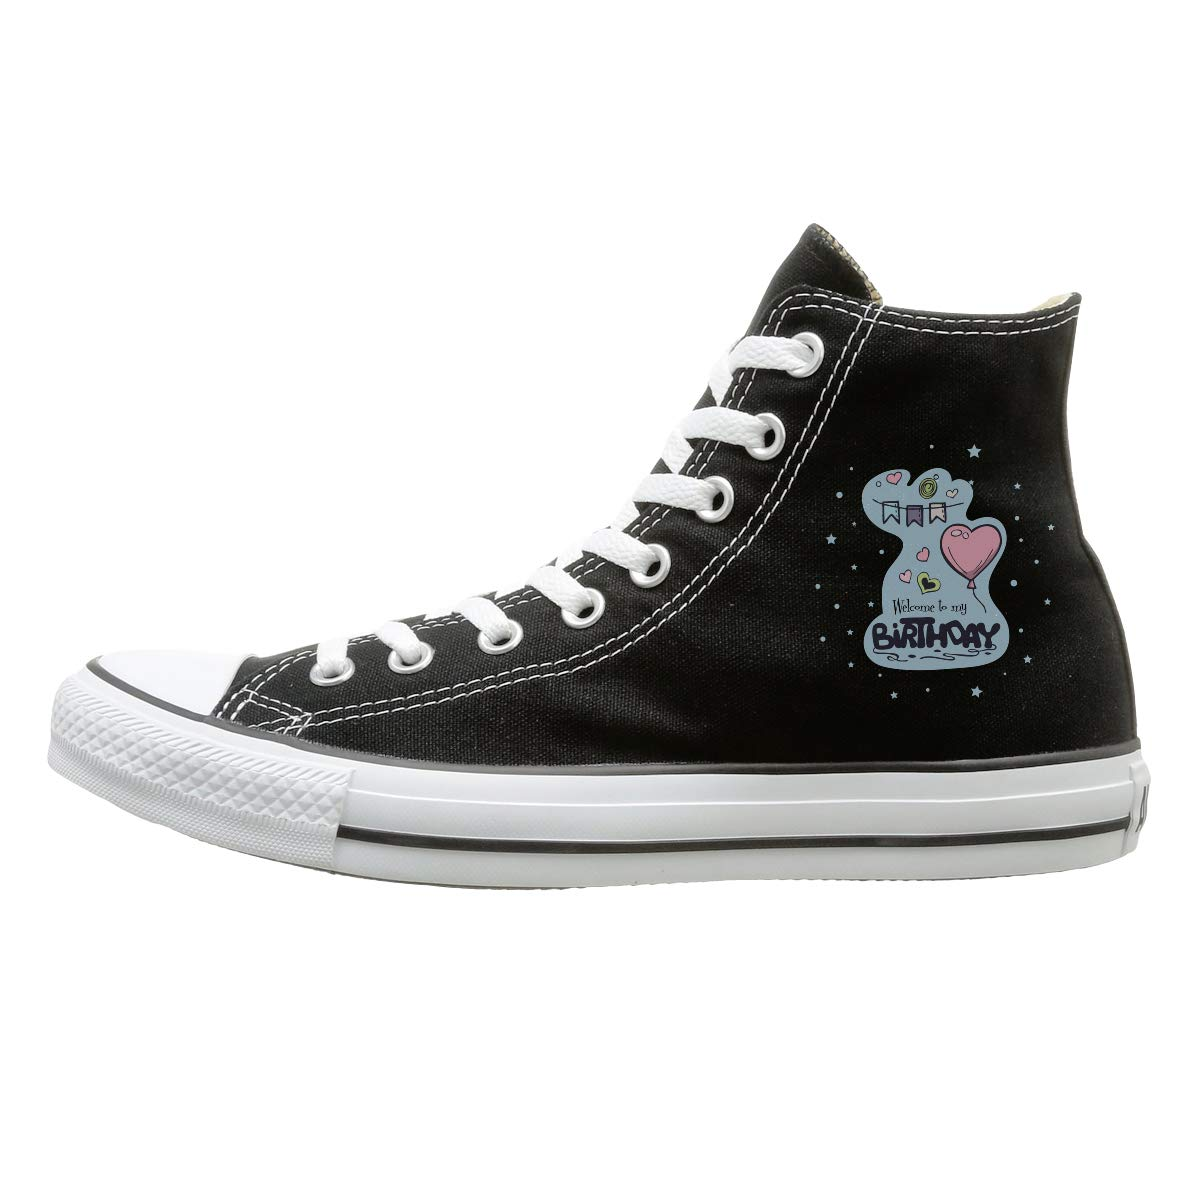 FOOOKL Woohoo You are 10 Happy 10th Birthday Canvas Shoes High Top Casual Black Sneakers Unisex Style